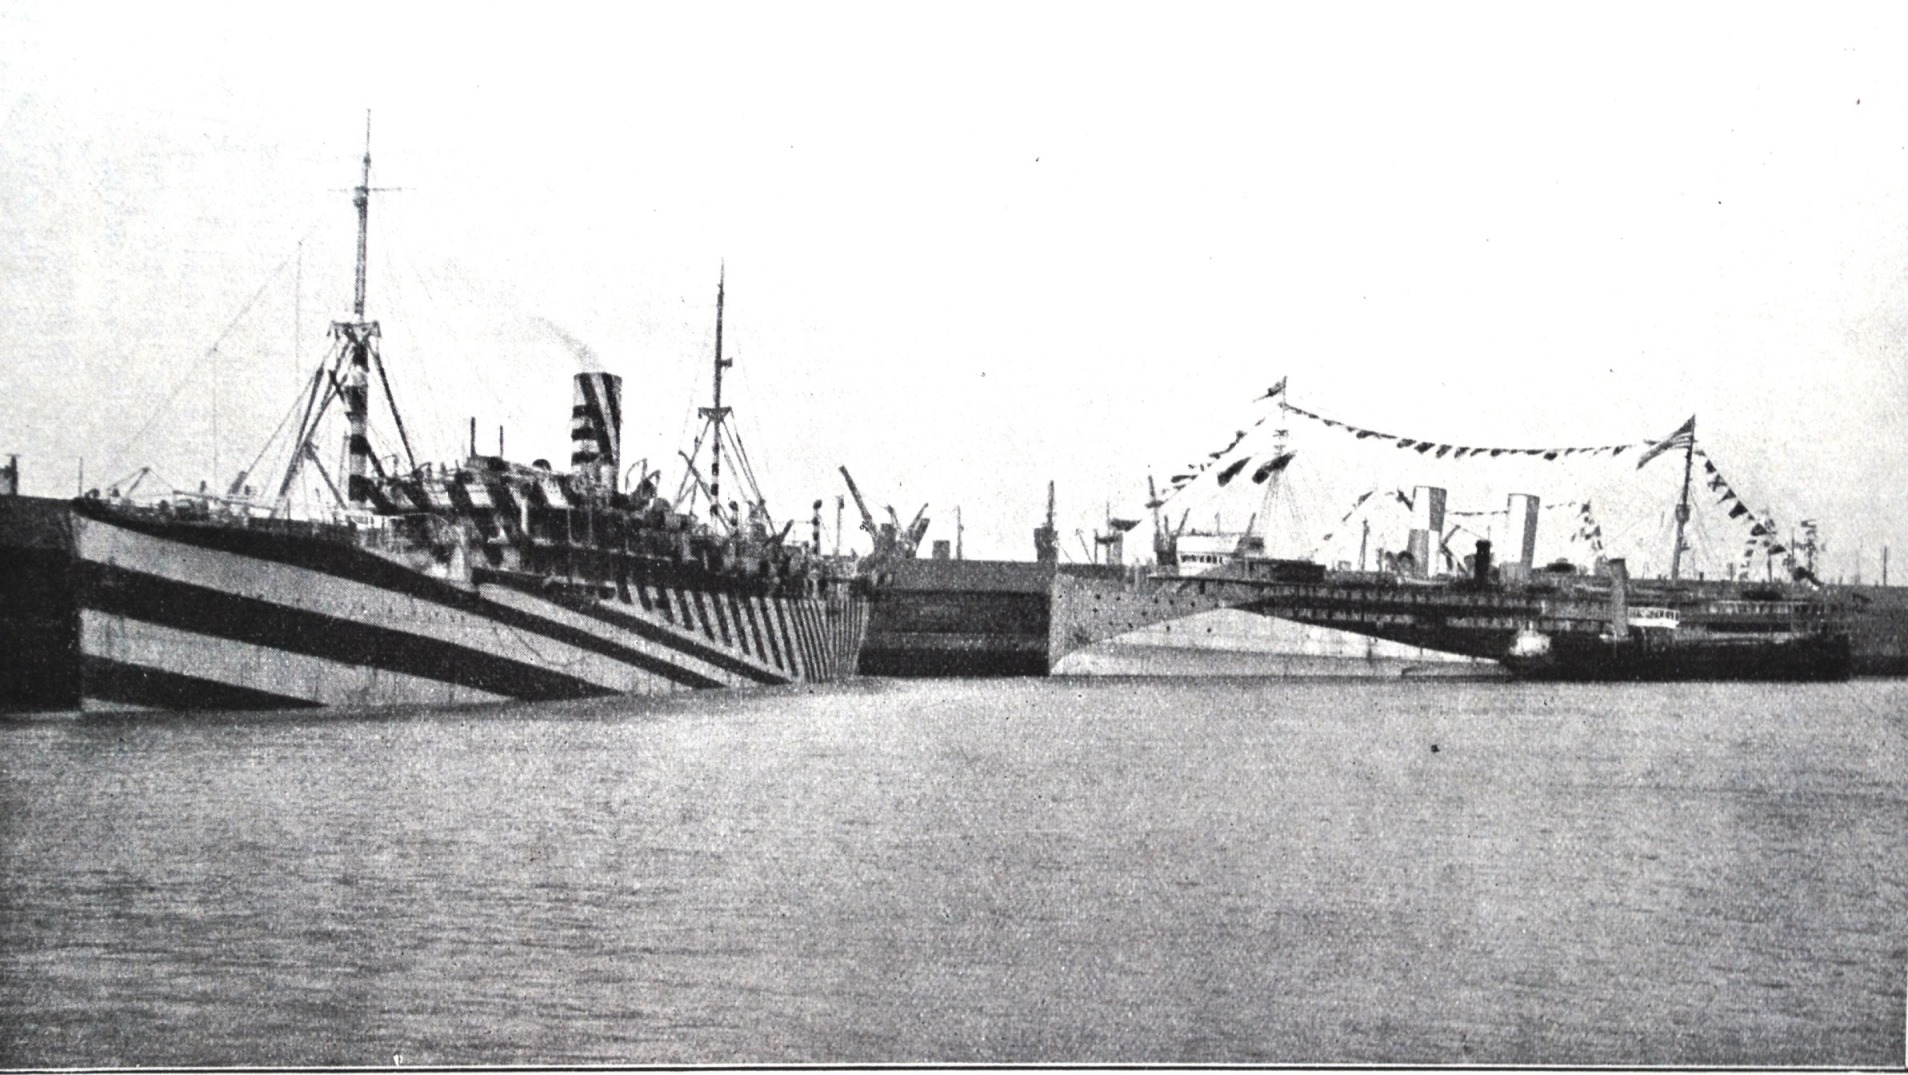 3. Photograph of ss Grantuly Castle (the single funnelled ship to the left), that Wilkinson used in his presentation as a good example of the striped type of dazzle scheme.